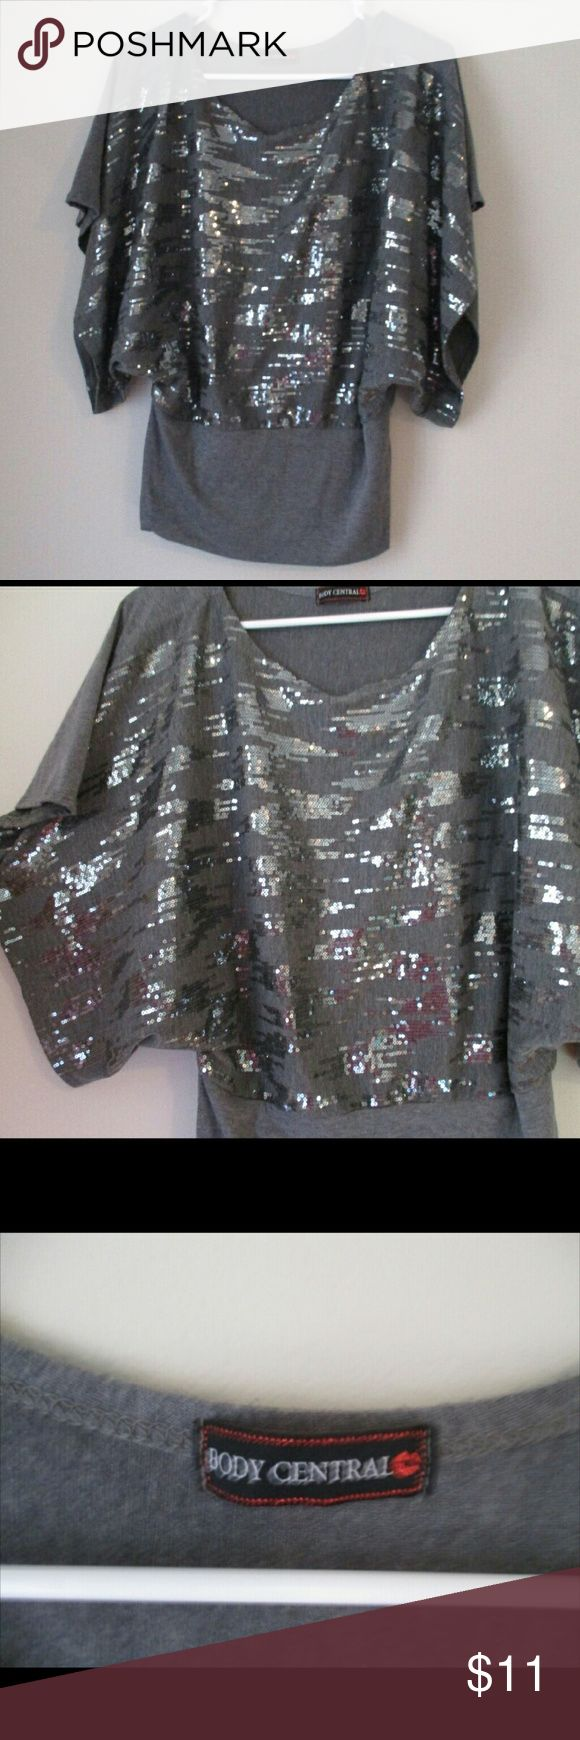 Body central top Shimmery in the front just grey in the back. Fitted at the bottom and lose at the top. Doesn't have a tag with size but I'd say it'd fit someone between a M and a L Body Central Tops Blouses